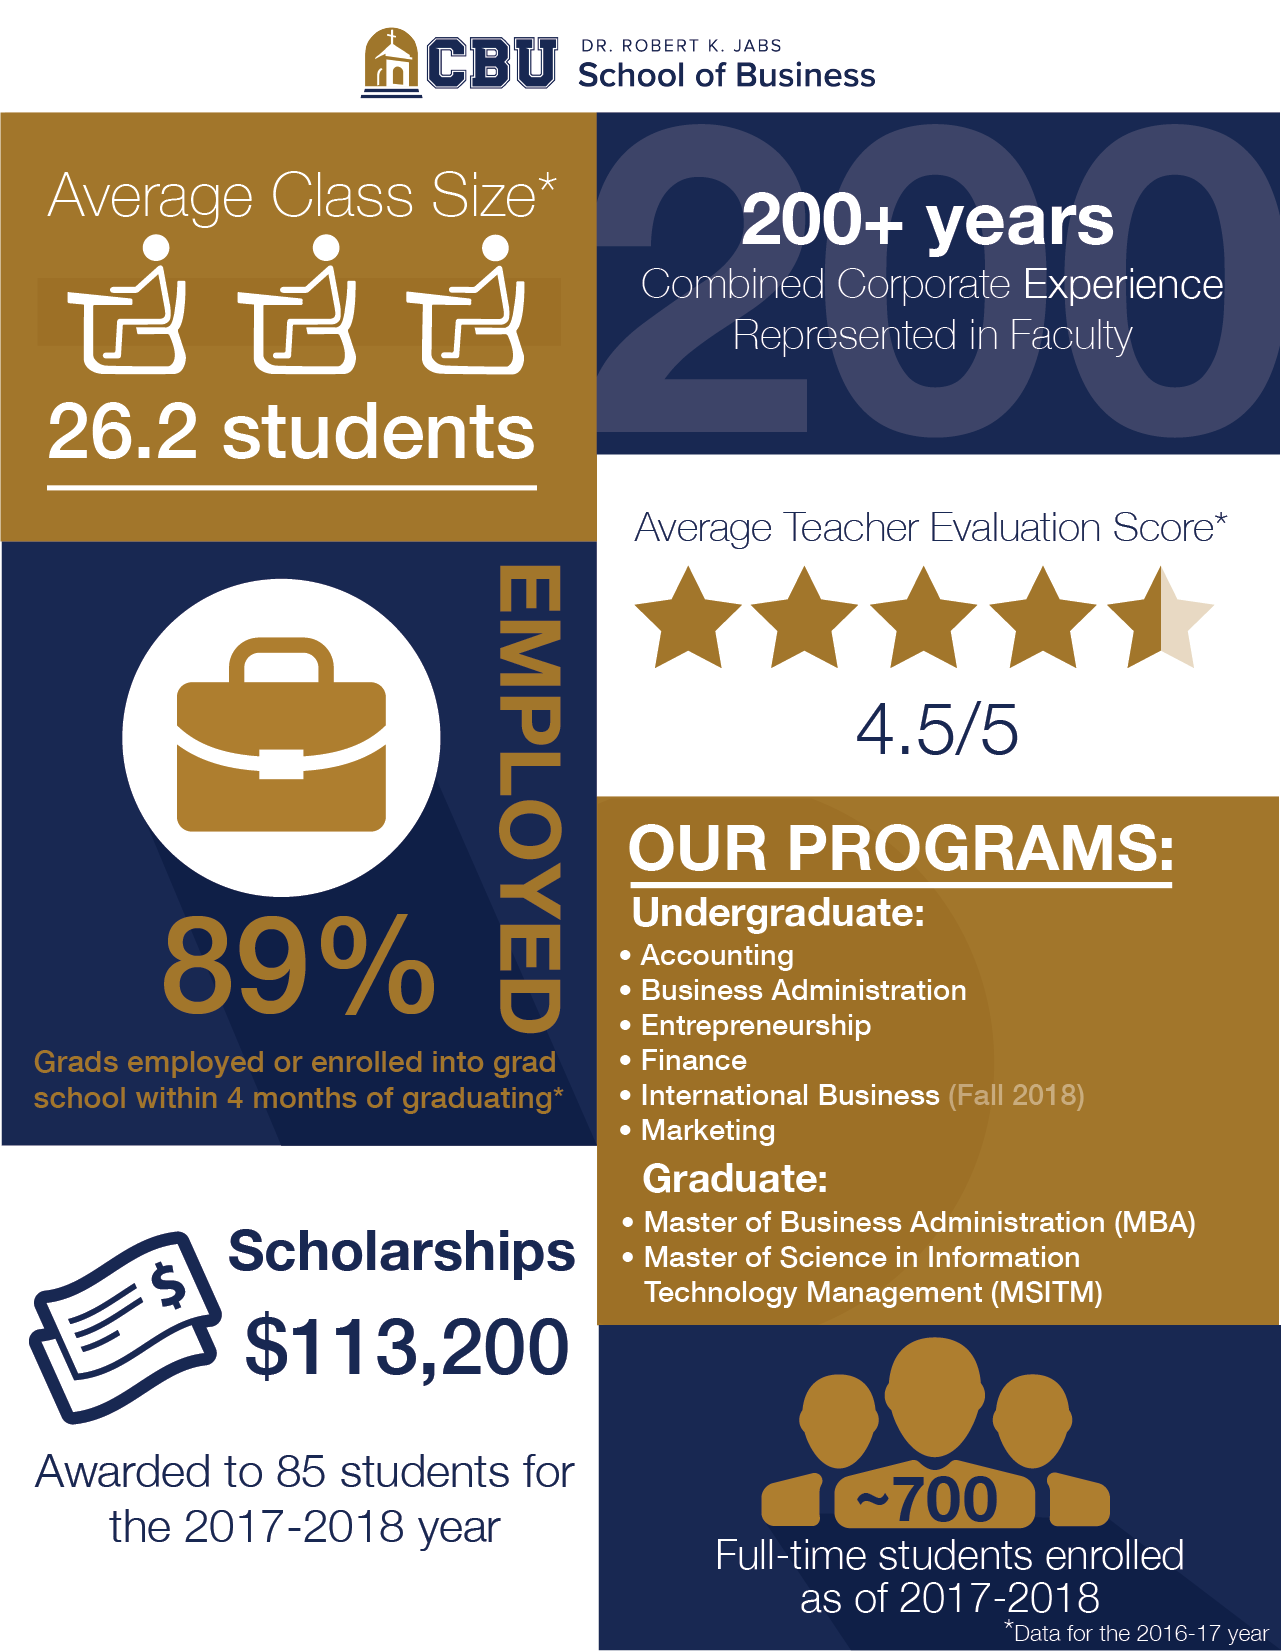 facts about the School of Business